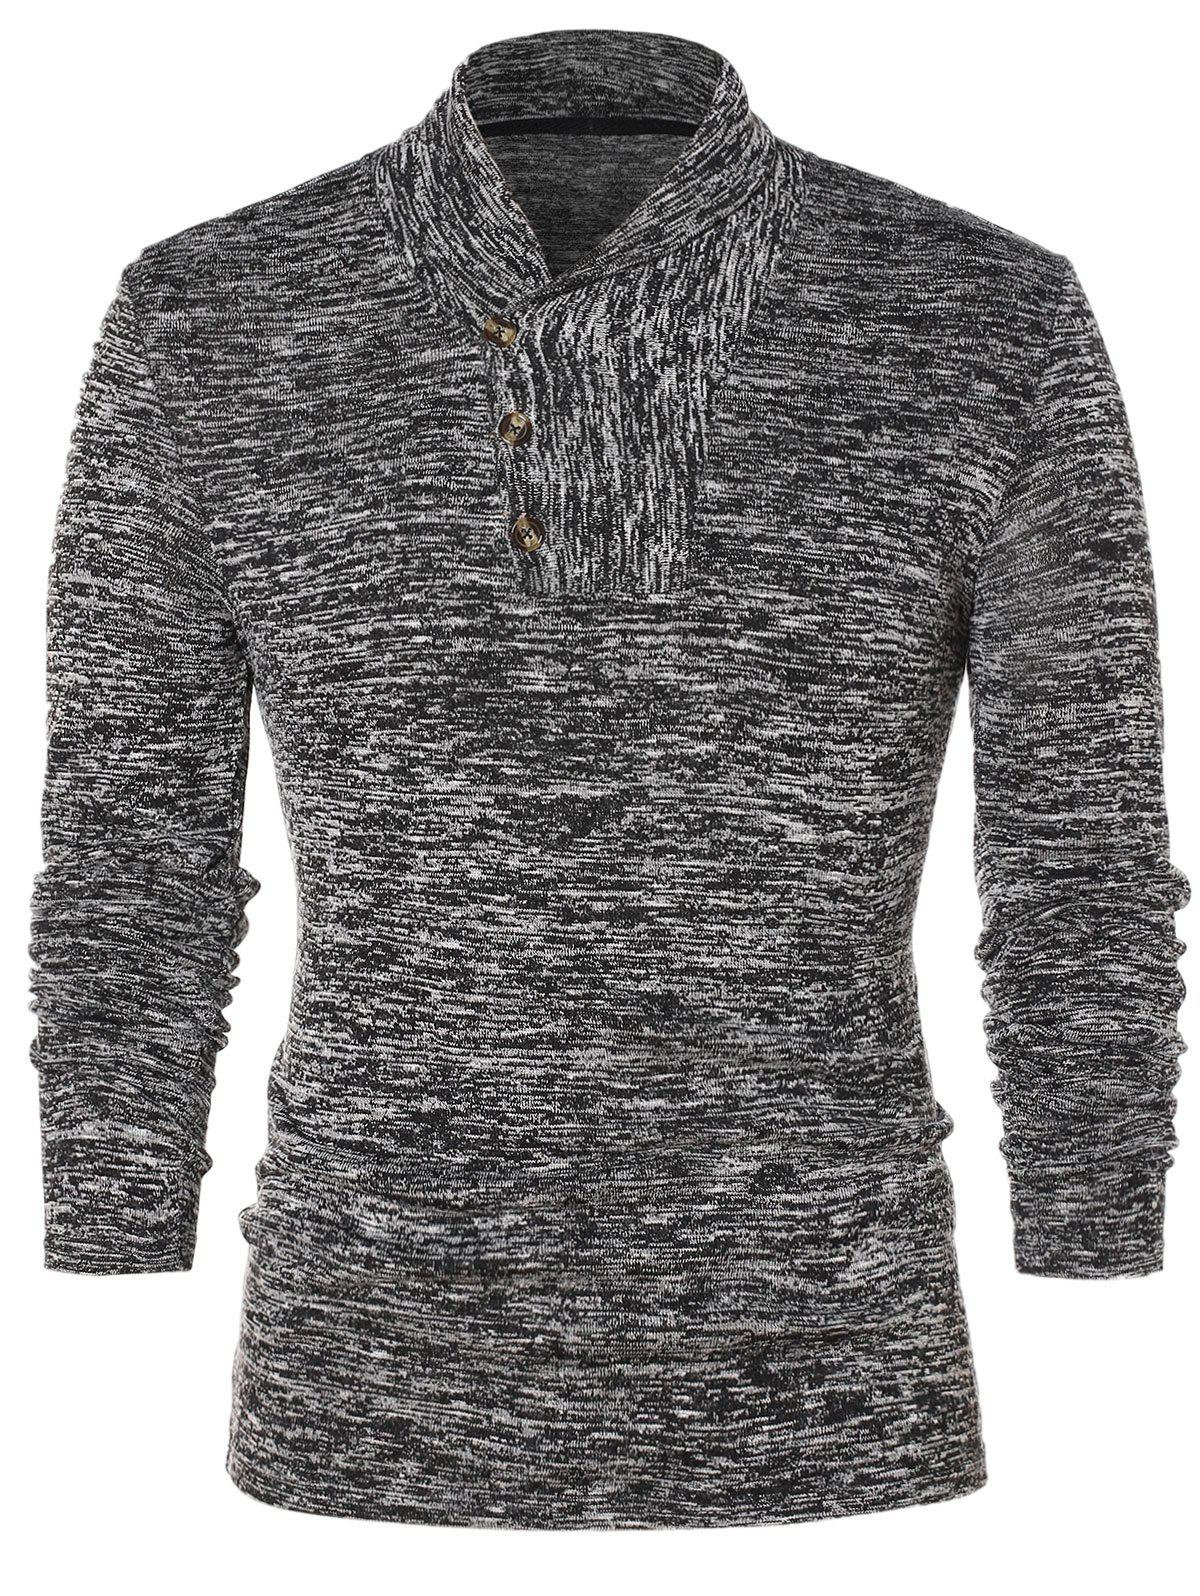 Shawl Collar Space Collar Pullover Sweater - GRAY CLOUD L